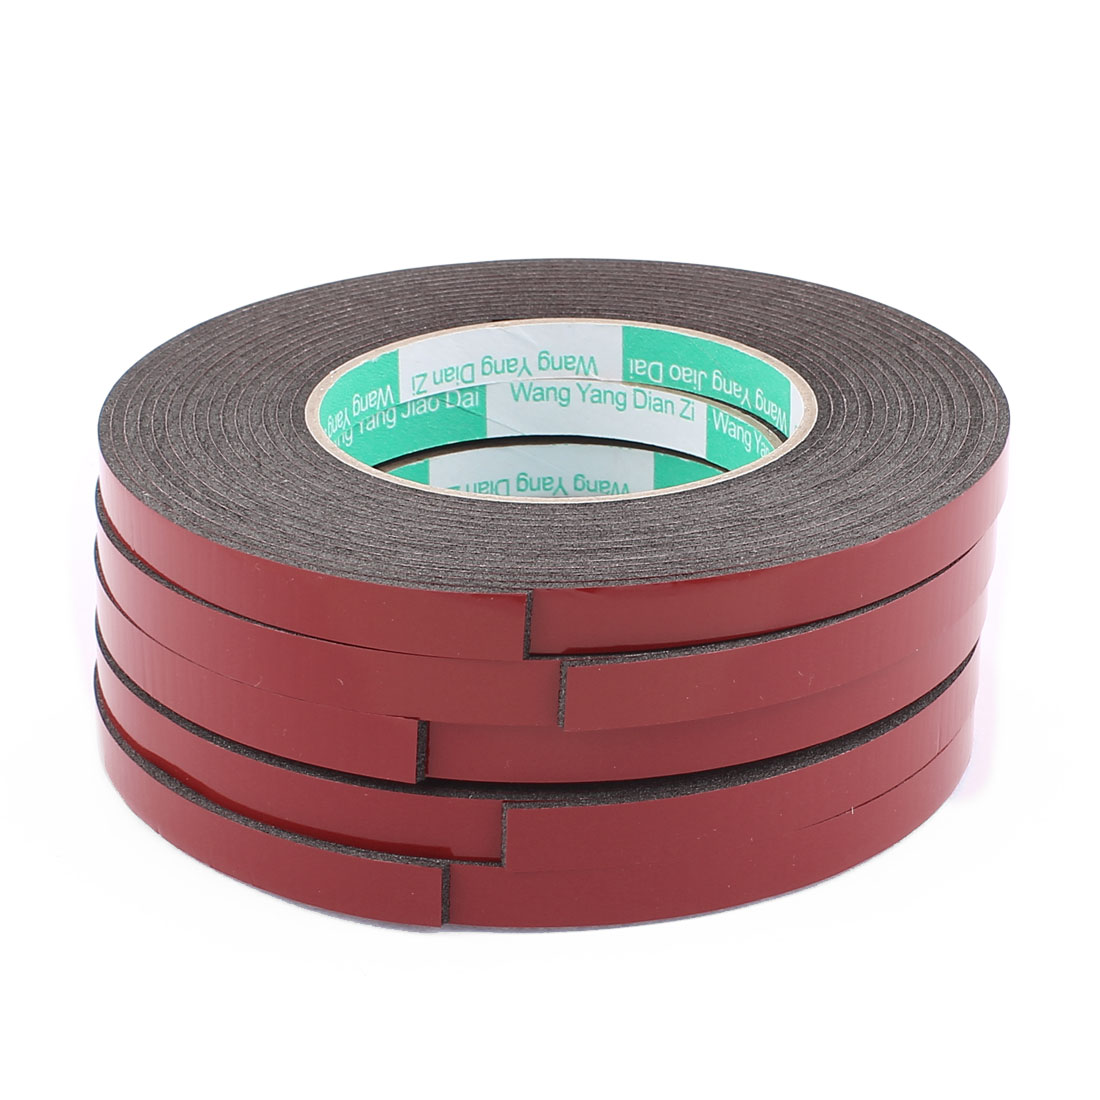 5pcs Black Strong Double Sided Adhesive Tape Sponge Tape 10MM Width 5M Long